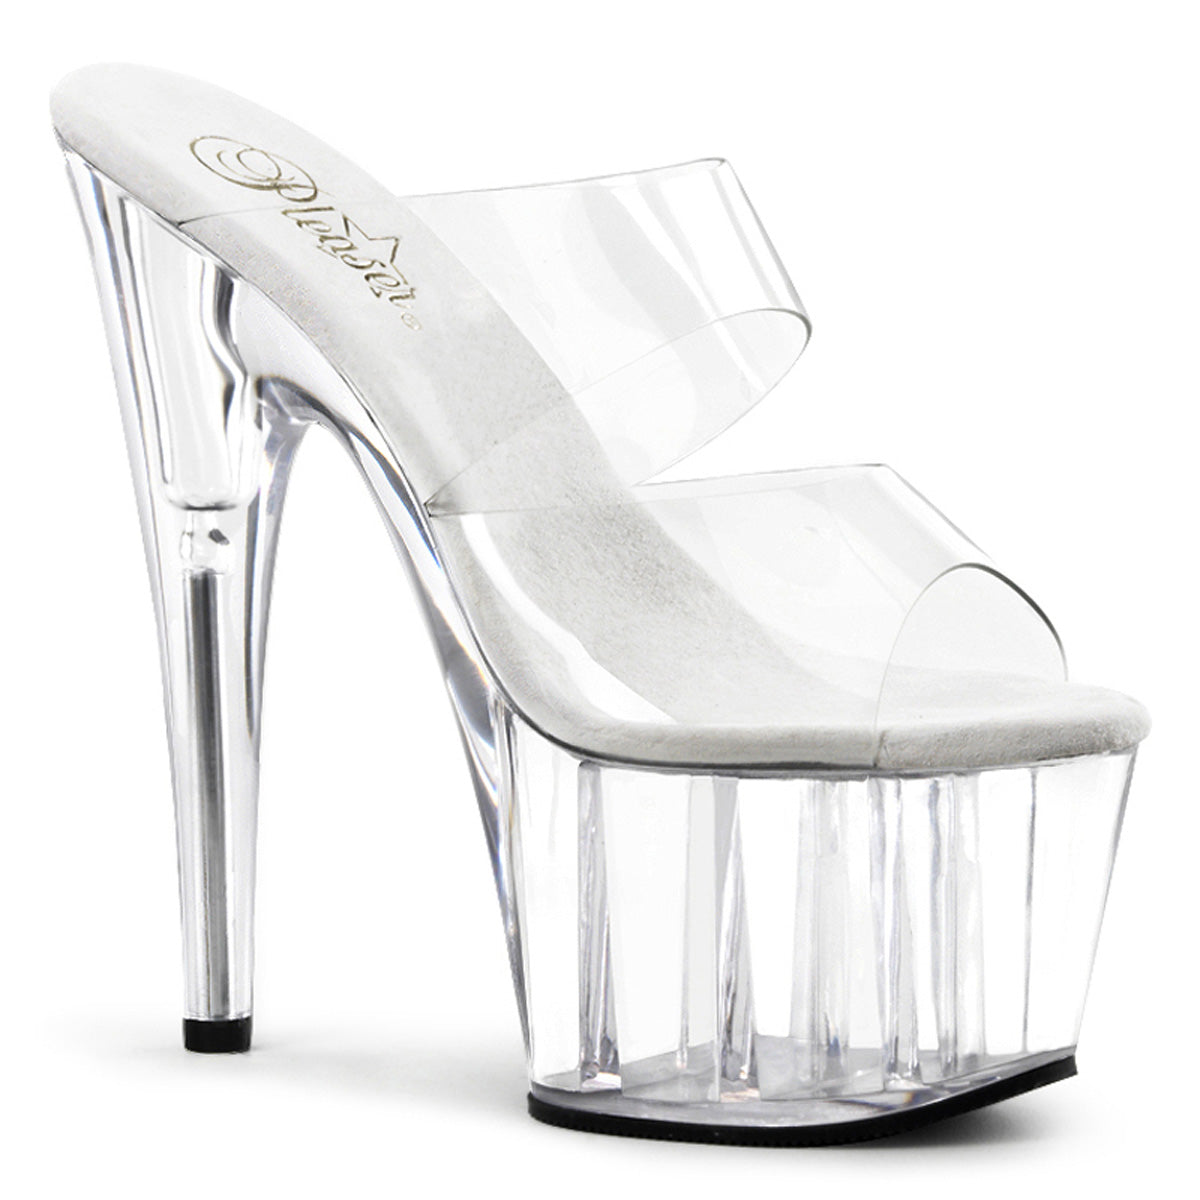 "7"" Heel, 2 3/4"" PF Slide, Two-Band Clear Straps"